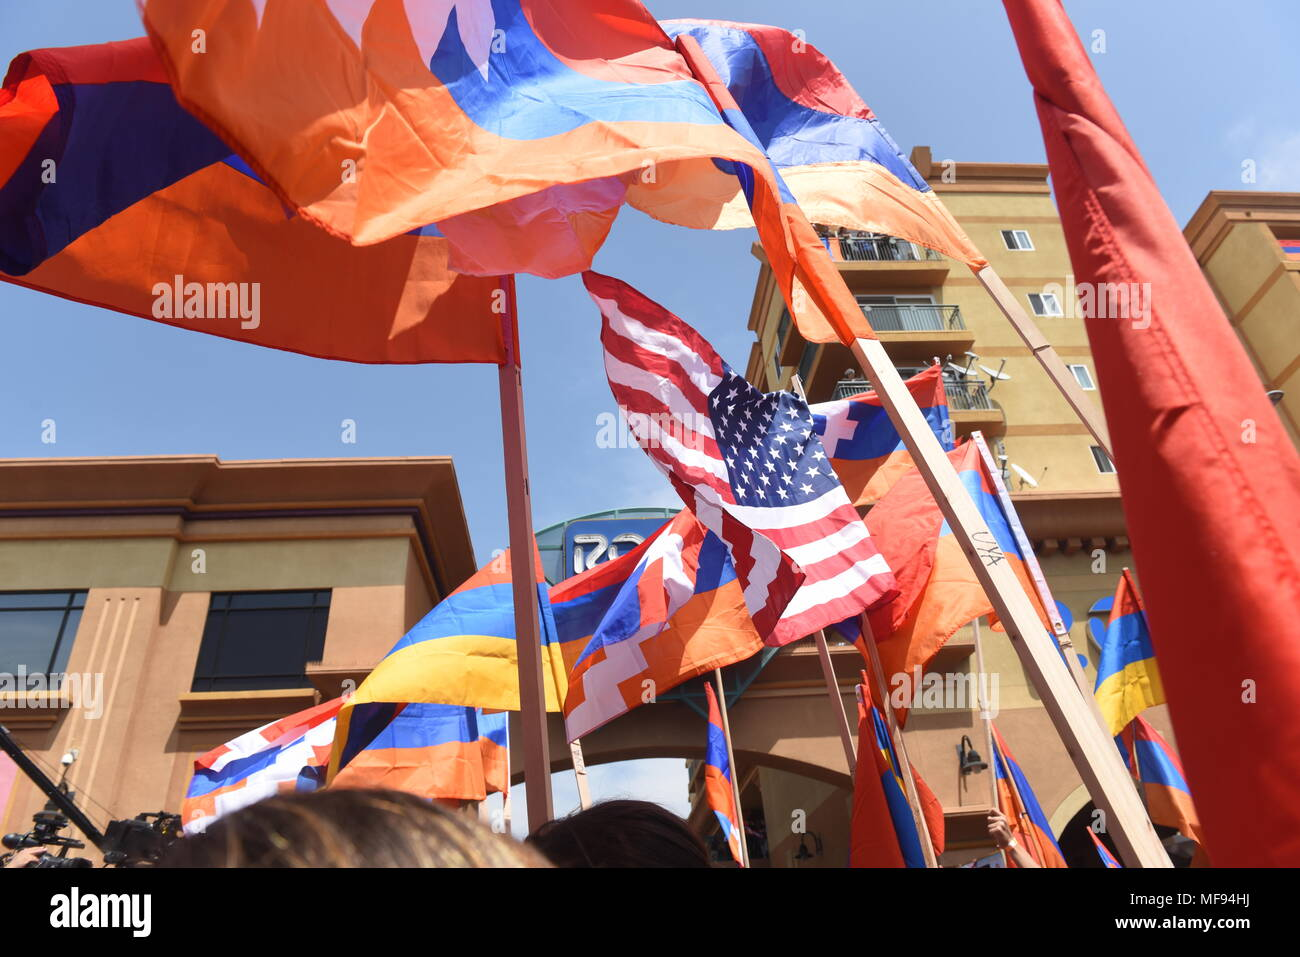 Los Angeles, USA. April 24, 2018 - LOS ANGELES - National flags of Armenia and USA during the 103rd anniversary commemoration of the Armenian Genocide on April 24. Little Armenia is a community that is part of the Hollywood district of Los Angeles, California. Credit: Hayk Shalunts/Alamy Live News - Stock Image